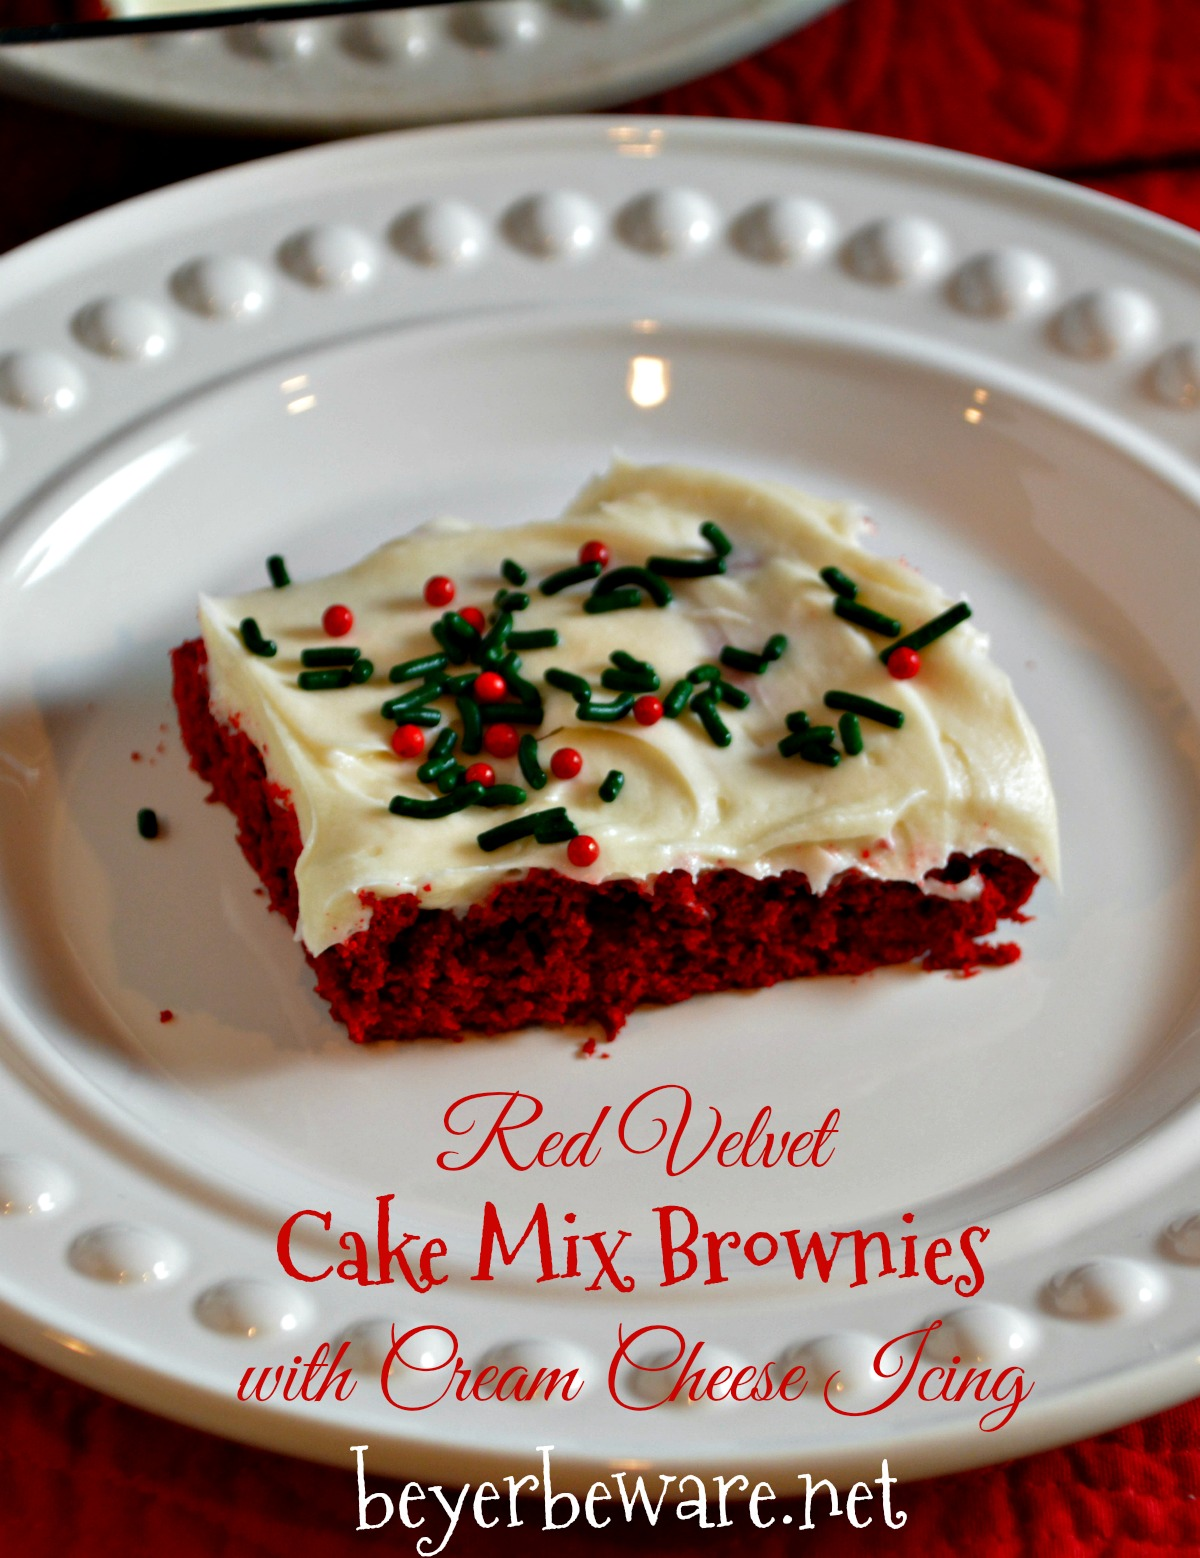 If you love red velvet cake and brownies, this red velvet cake mix brownies recipe a collision of favorites topped with an easy cream cheese icing.